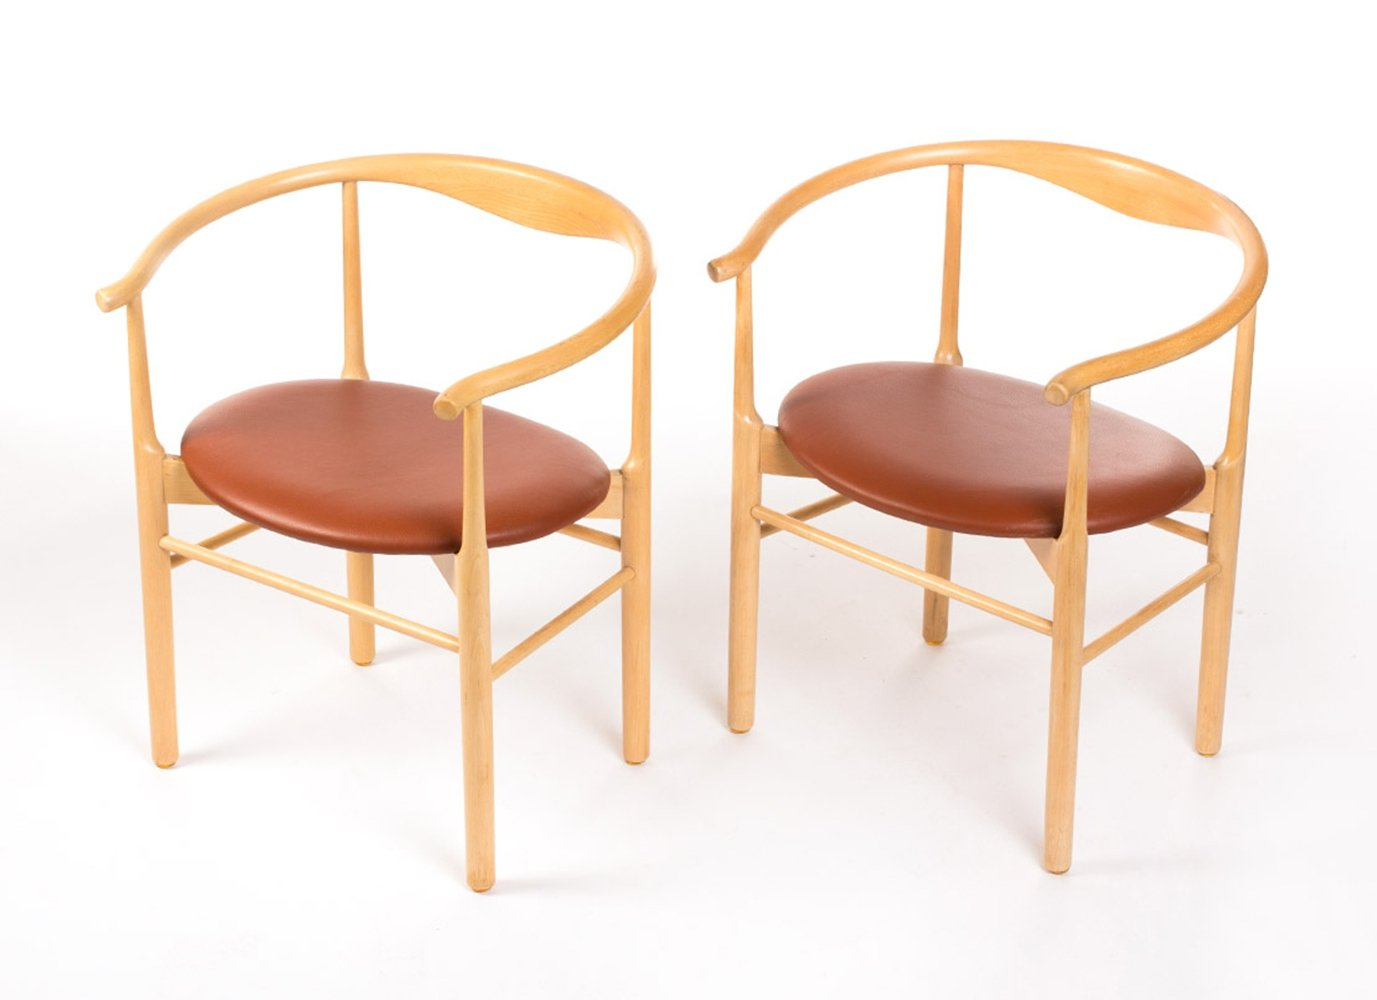 Vintage set of two Danish design chairs in beech wood